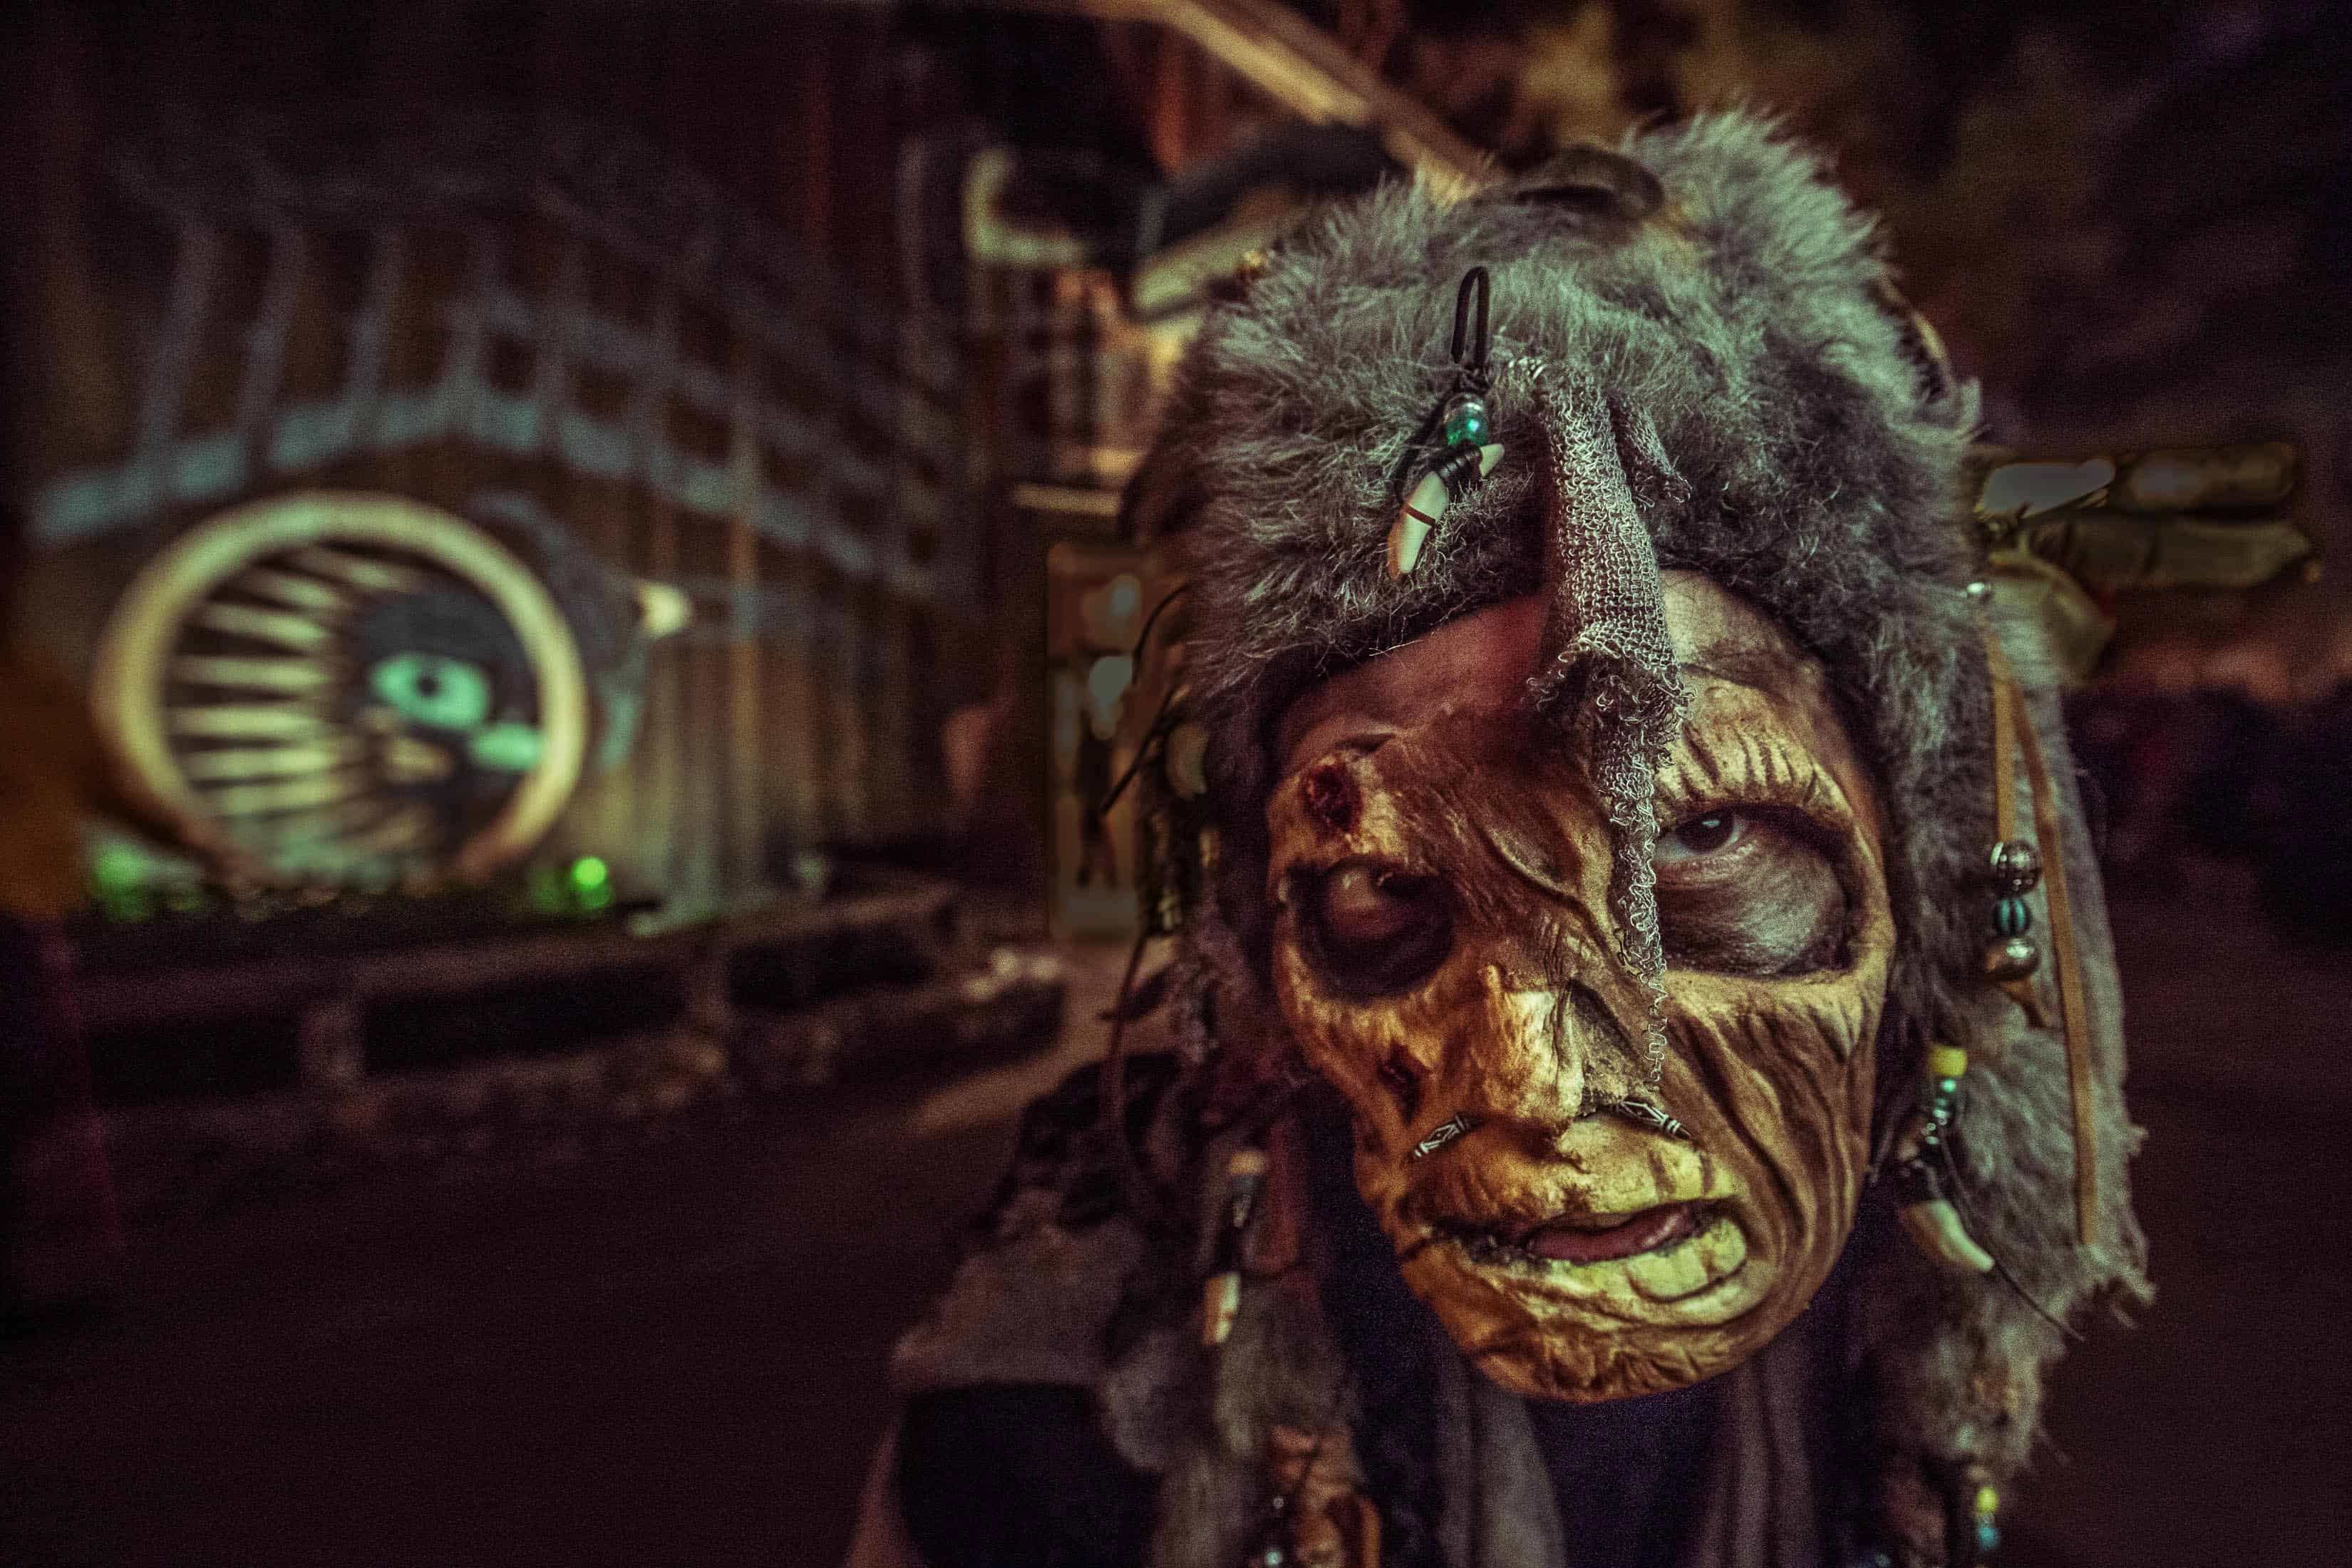 New Fear-Inducing Attractions Debut At Halloween Haunt